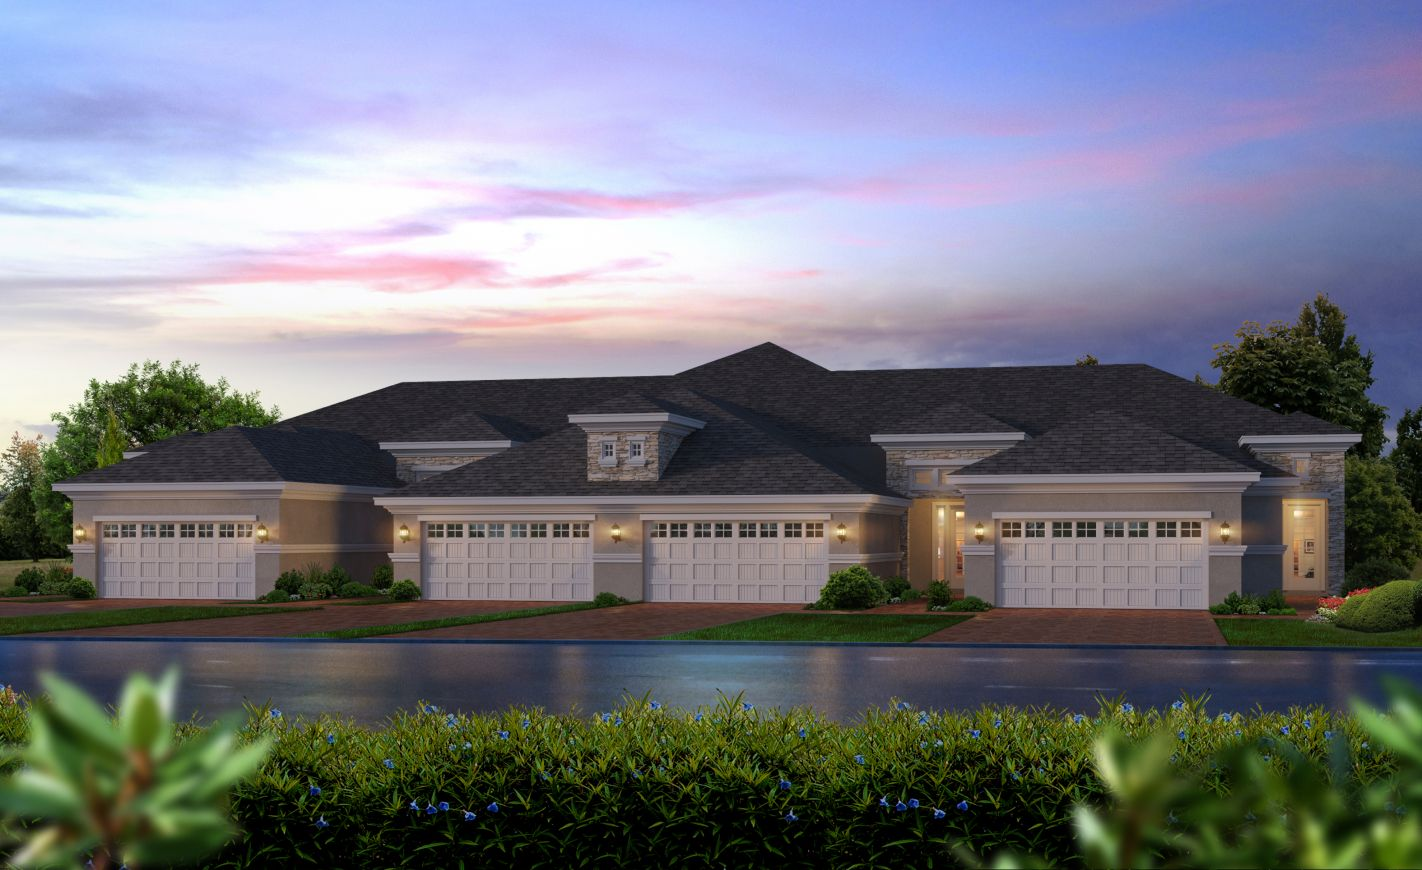 Ormond Beach Homes for Sale - The Blossom II at Plantation Bay